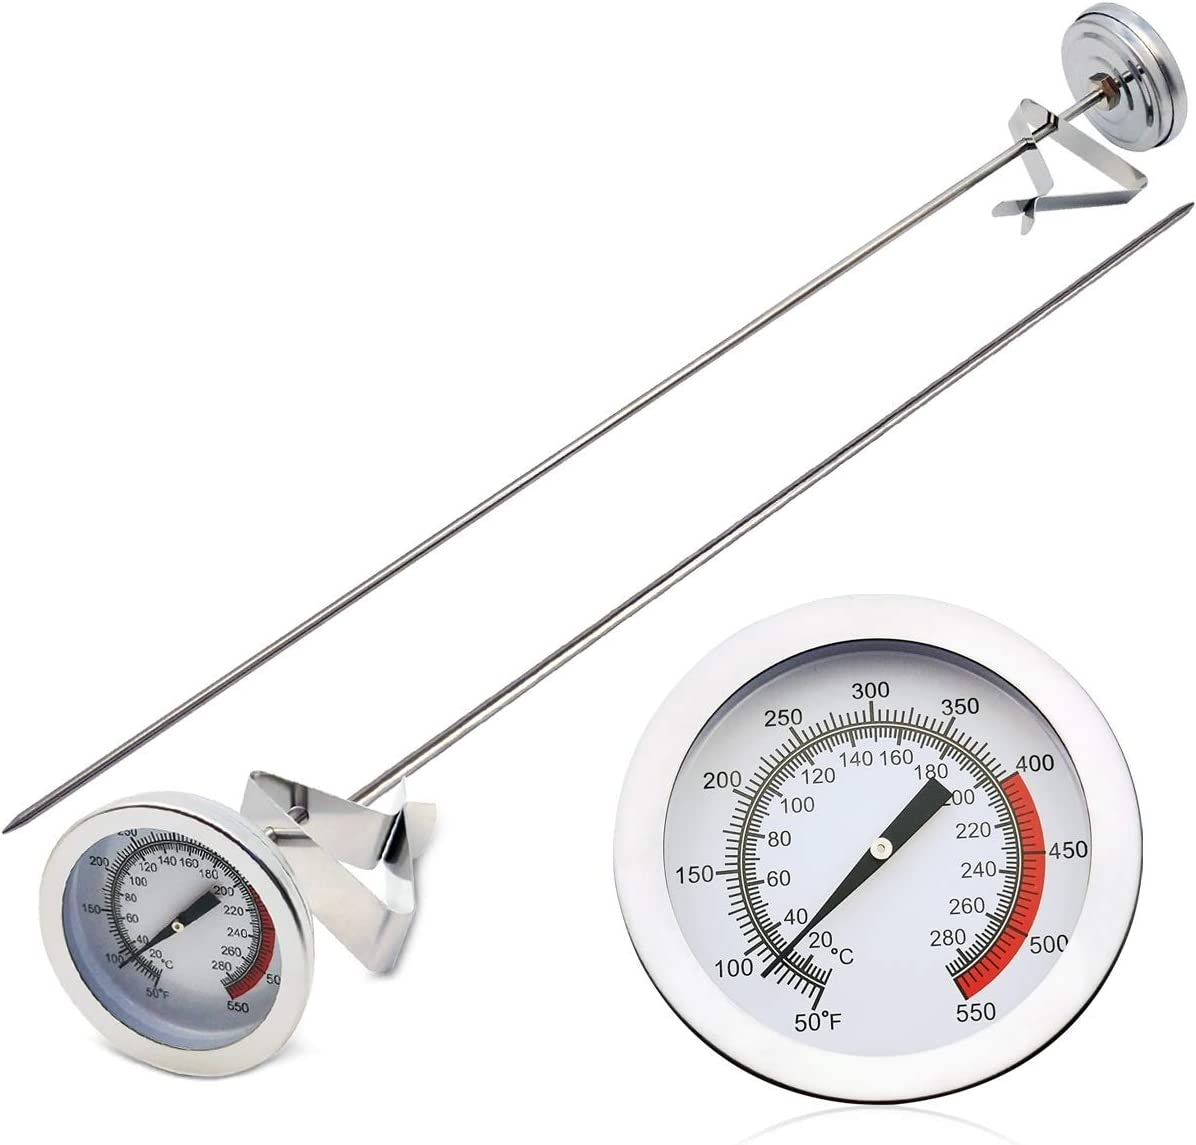 "KT THERMO Cooking Thermometer for Deep Fry with 15'' Stainless Steel Food Grade Probe and Clip, Fast Instant Read 2"" Dial, Optimum Temperature Zones - for Turkey,Beef,Lamb, Seafood Cooking"